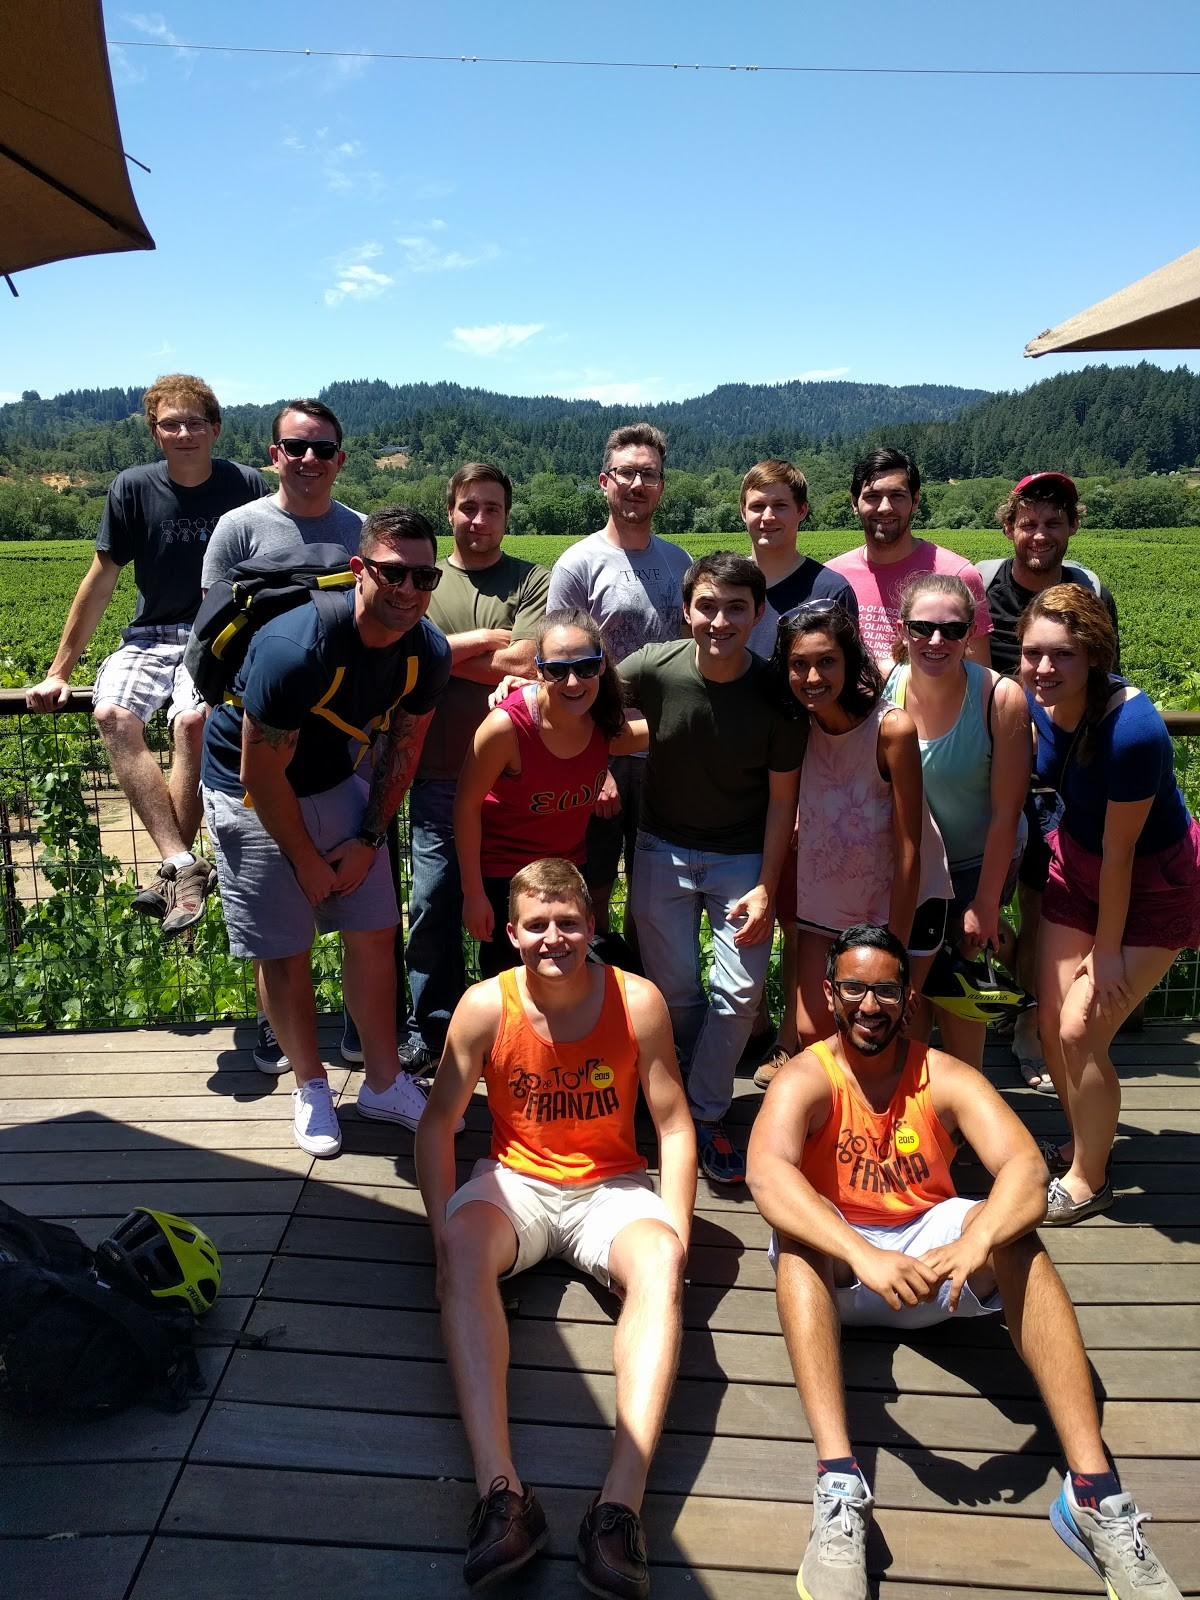 Sonoma Wine Tasting Group Shot